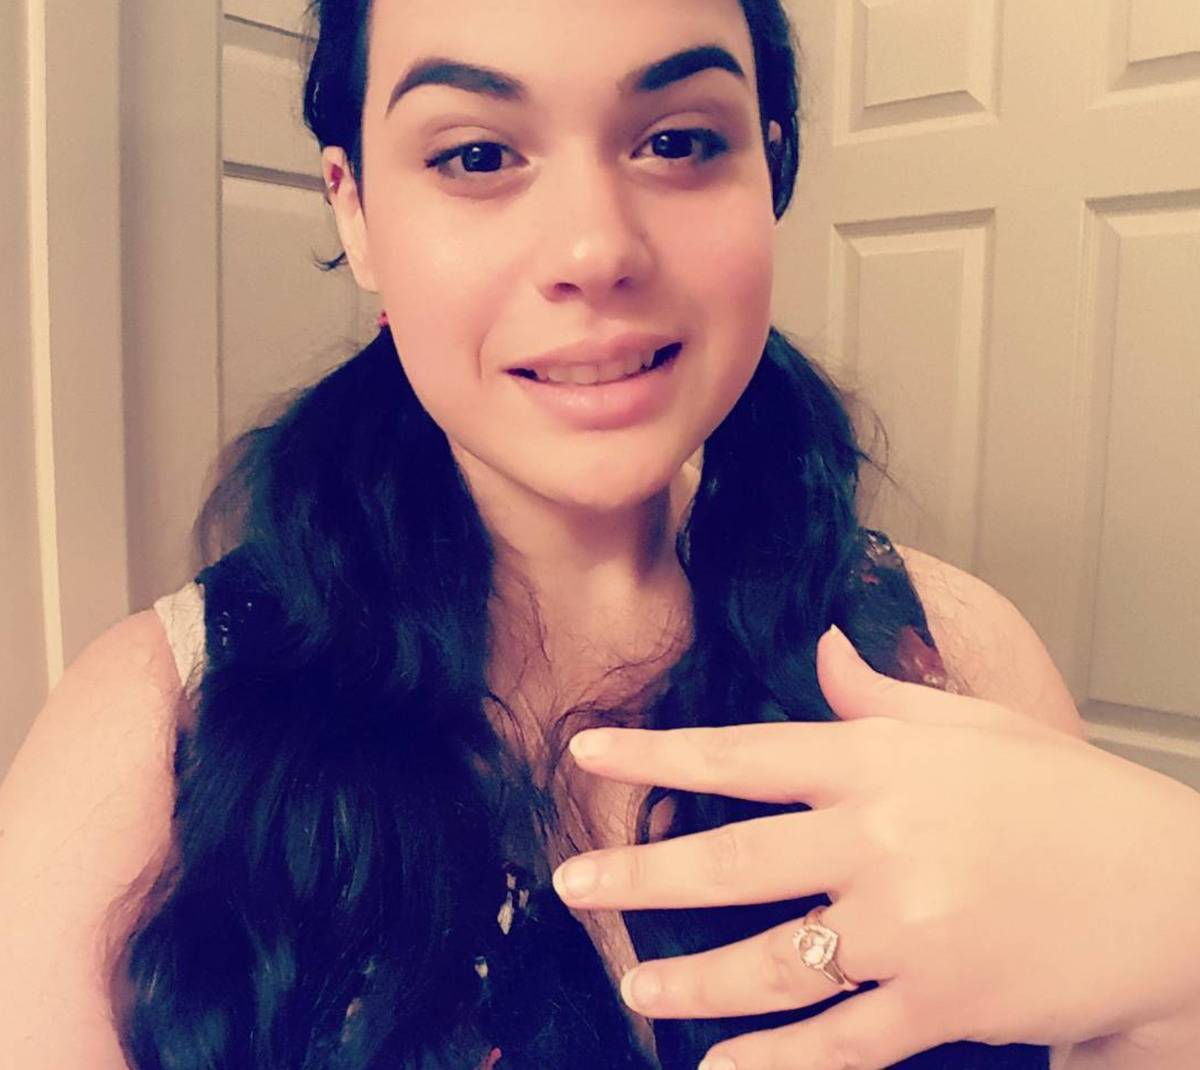 Amber shows off her engagement ring.